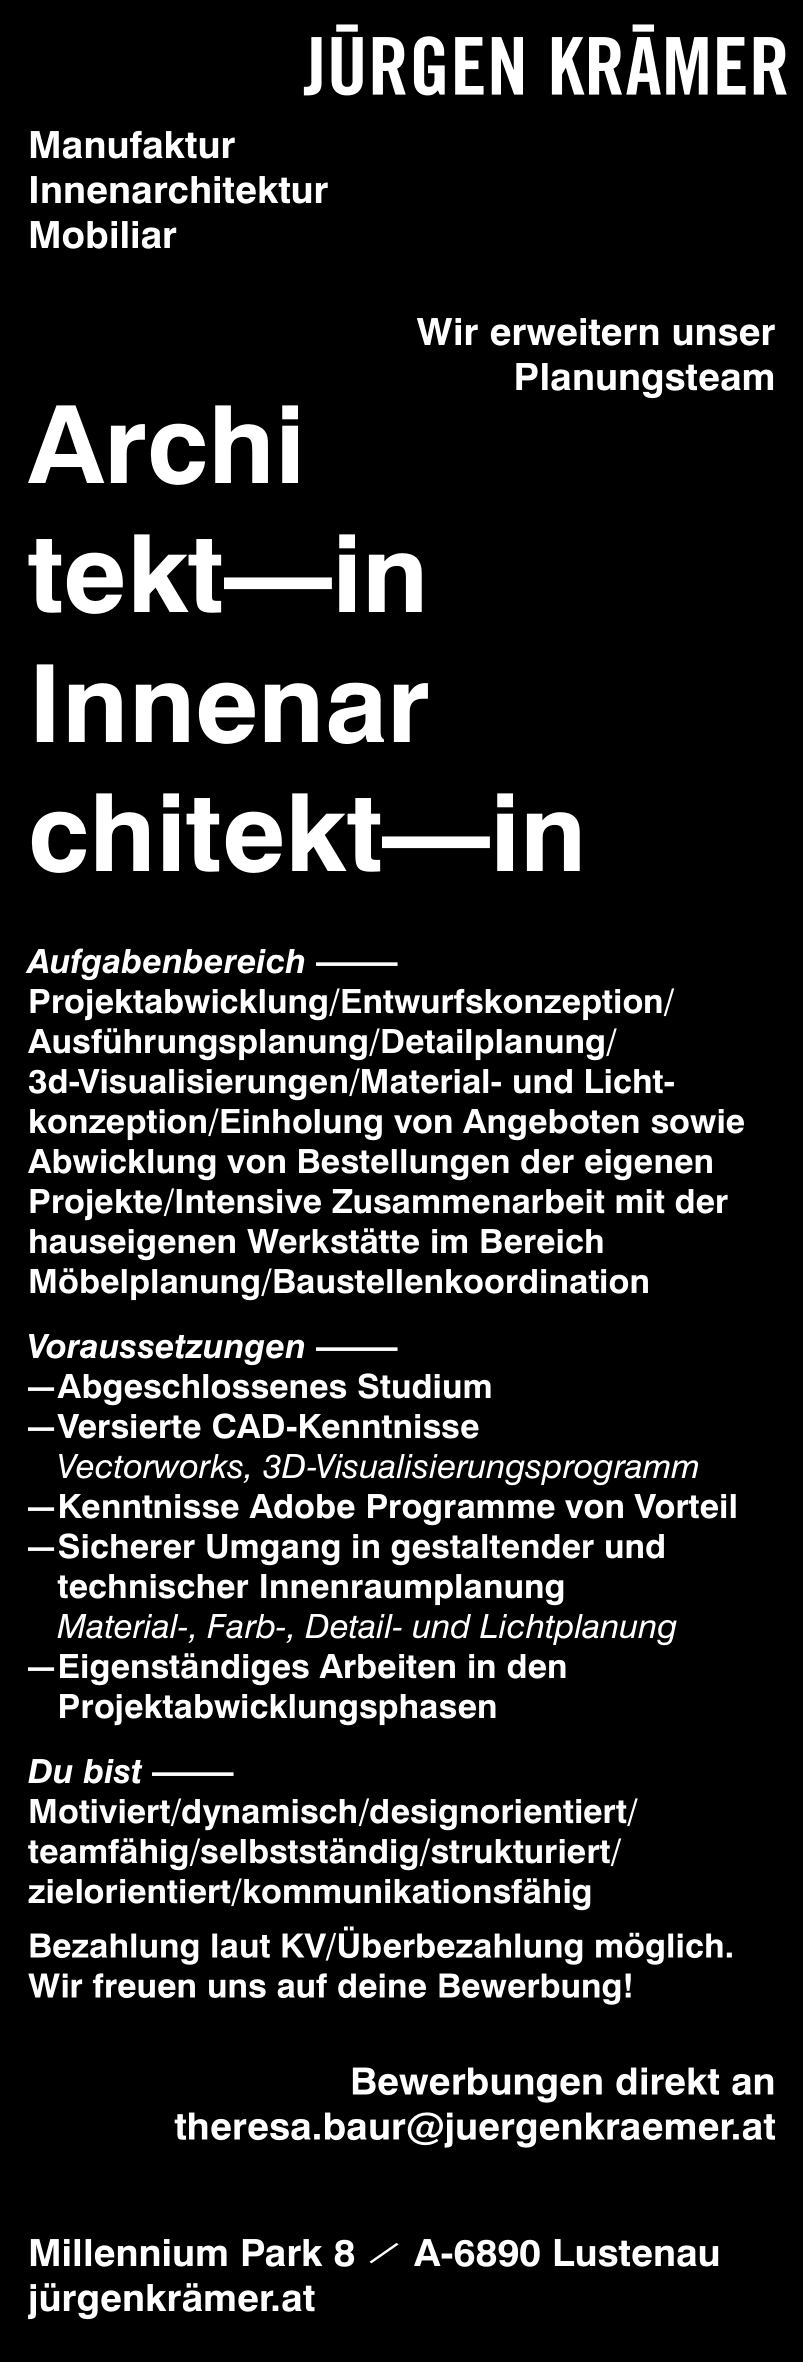 Architekt/in & Innenarchitekt/in